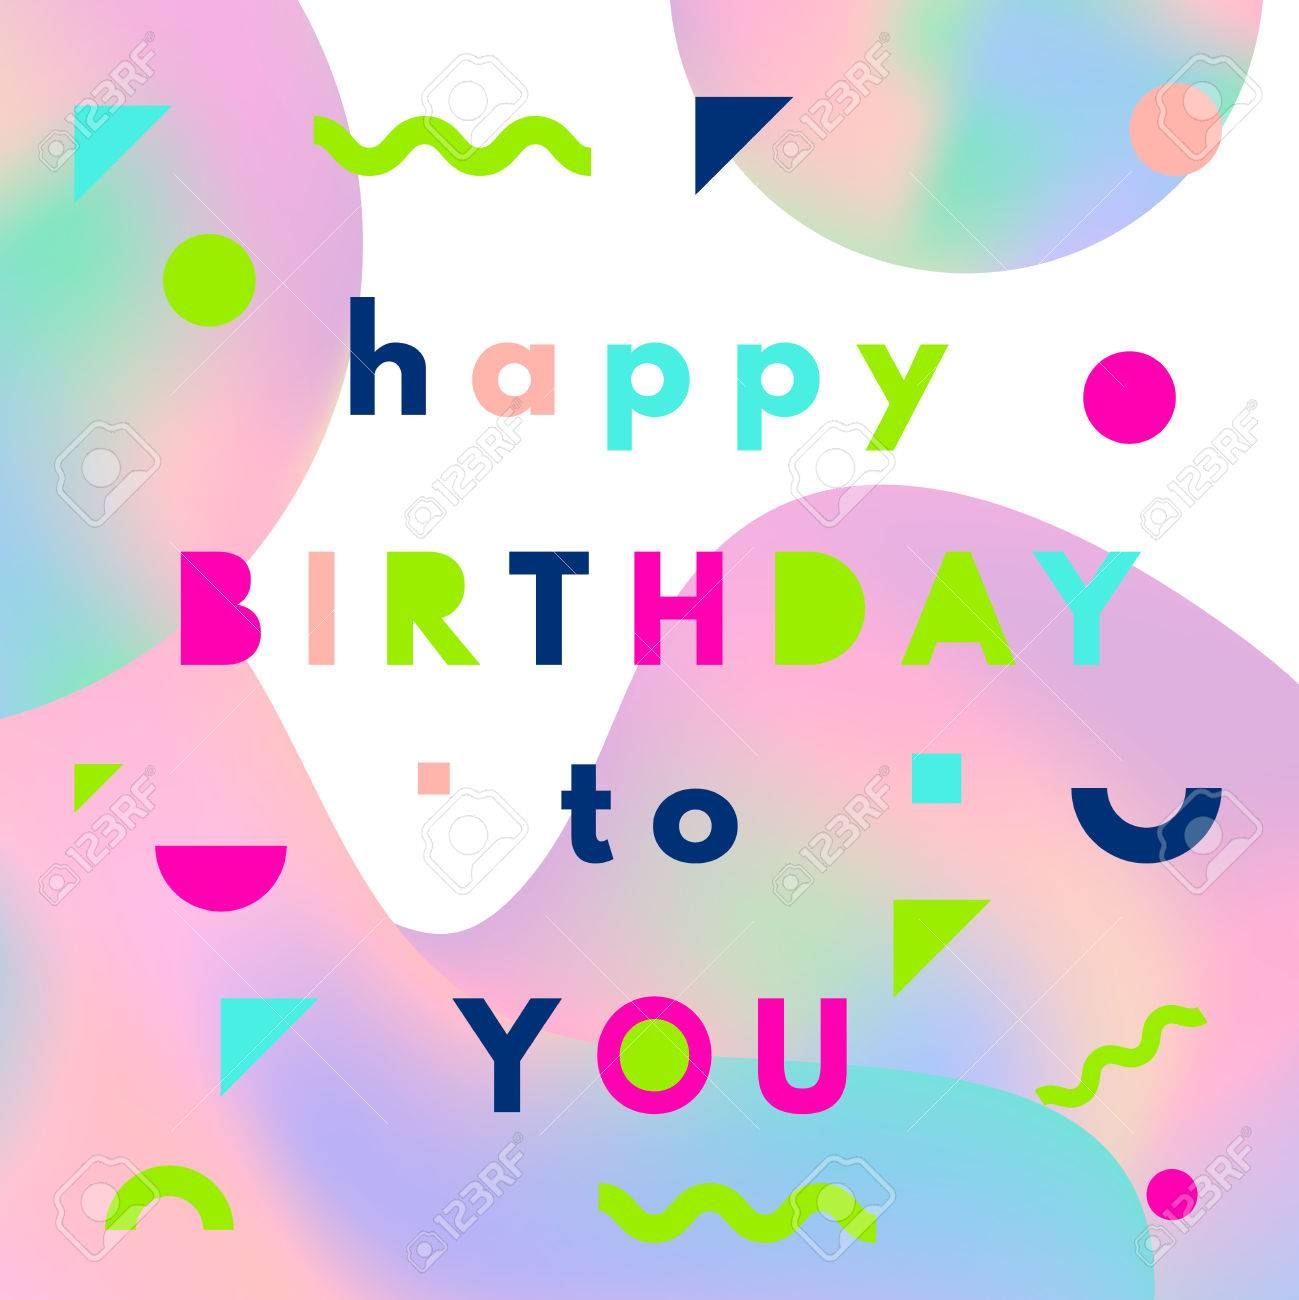 Happy birthday greeting card with holographic mesh layout in happy birthday greeting card with holographic mesh layout in memphis style stock vector 60194194 kristyandbryce Gallery